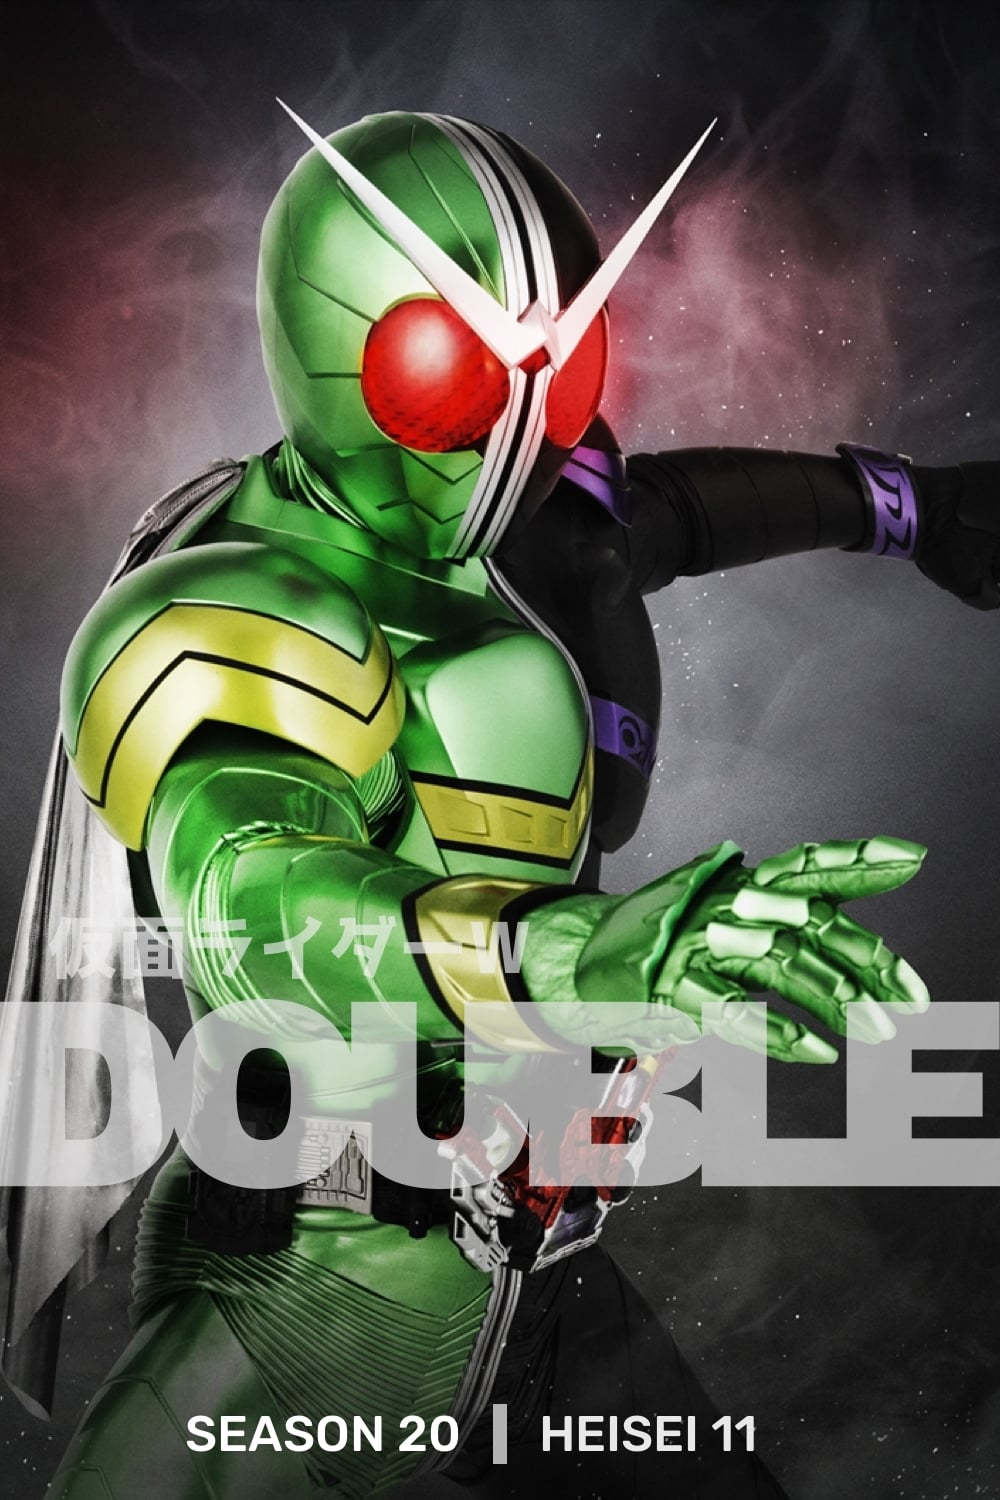 Kamen Rider - Season 21 Episode 7 : Useless Husband, A Trap, Big Win Season 20